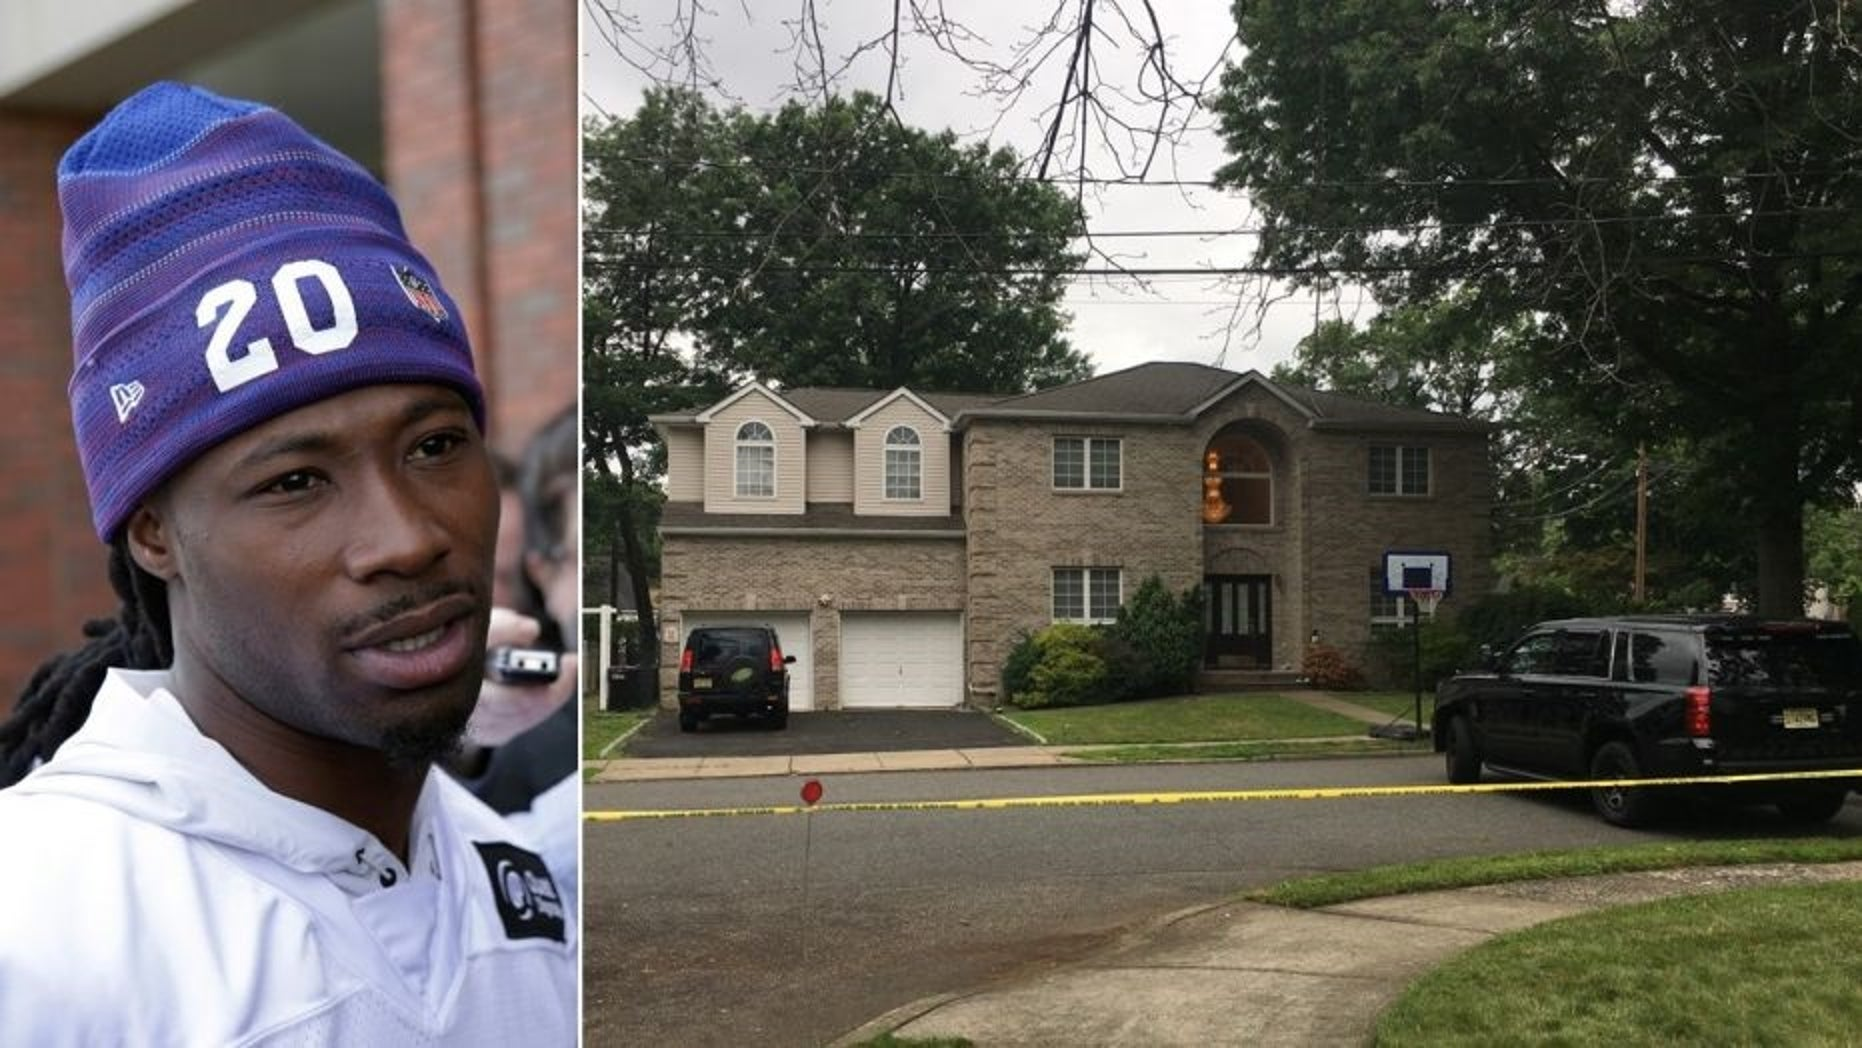 Janoris Jenkins has been living at the home, located about 10 miles north of Metlife Stadium, for two years.